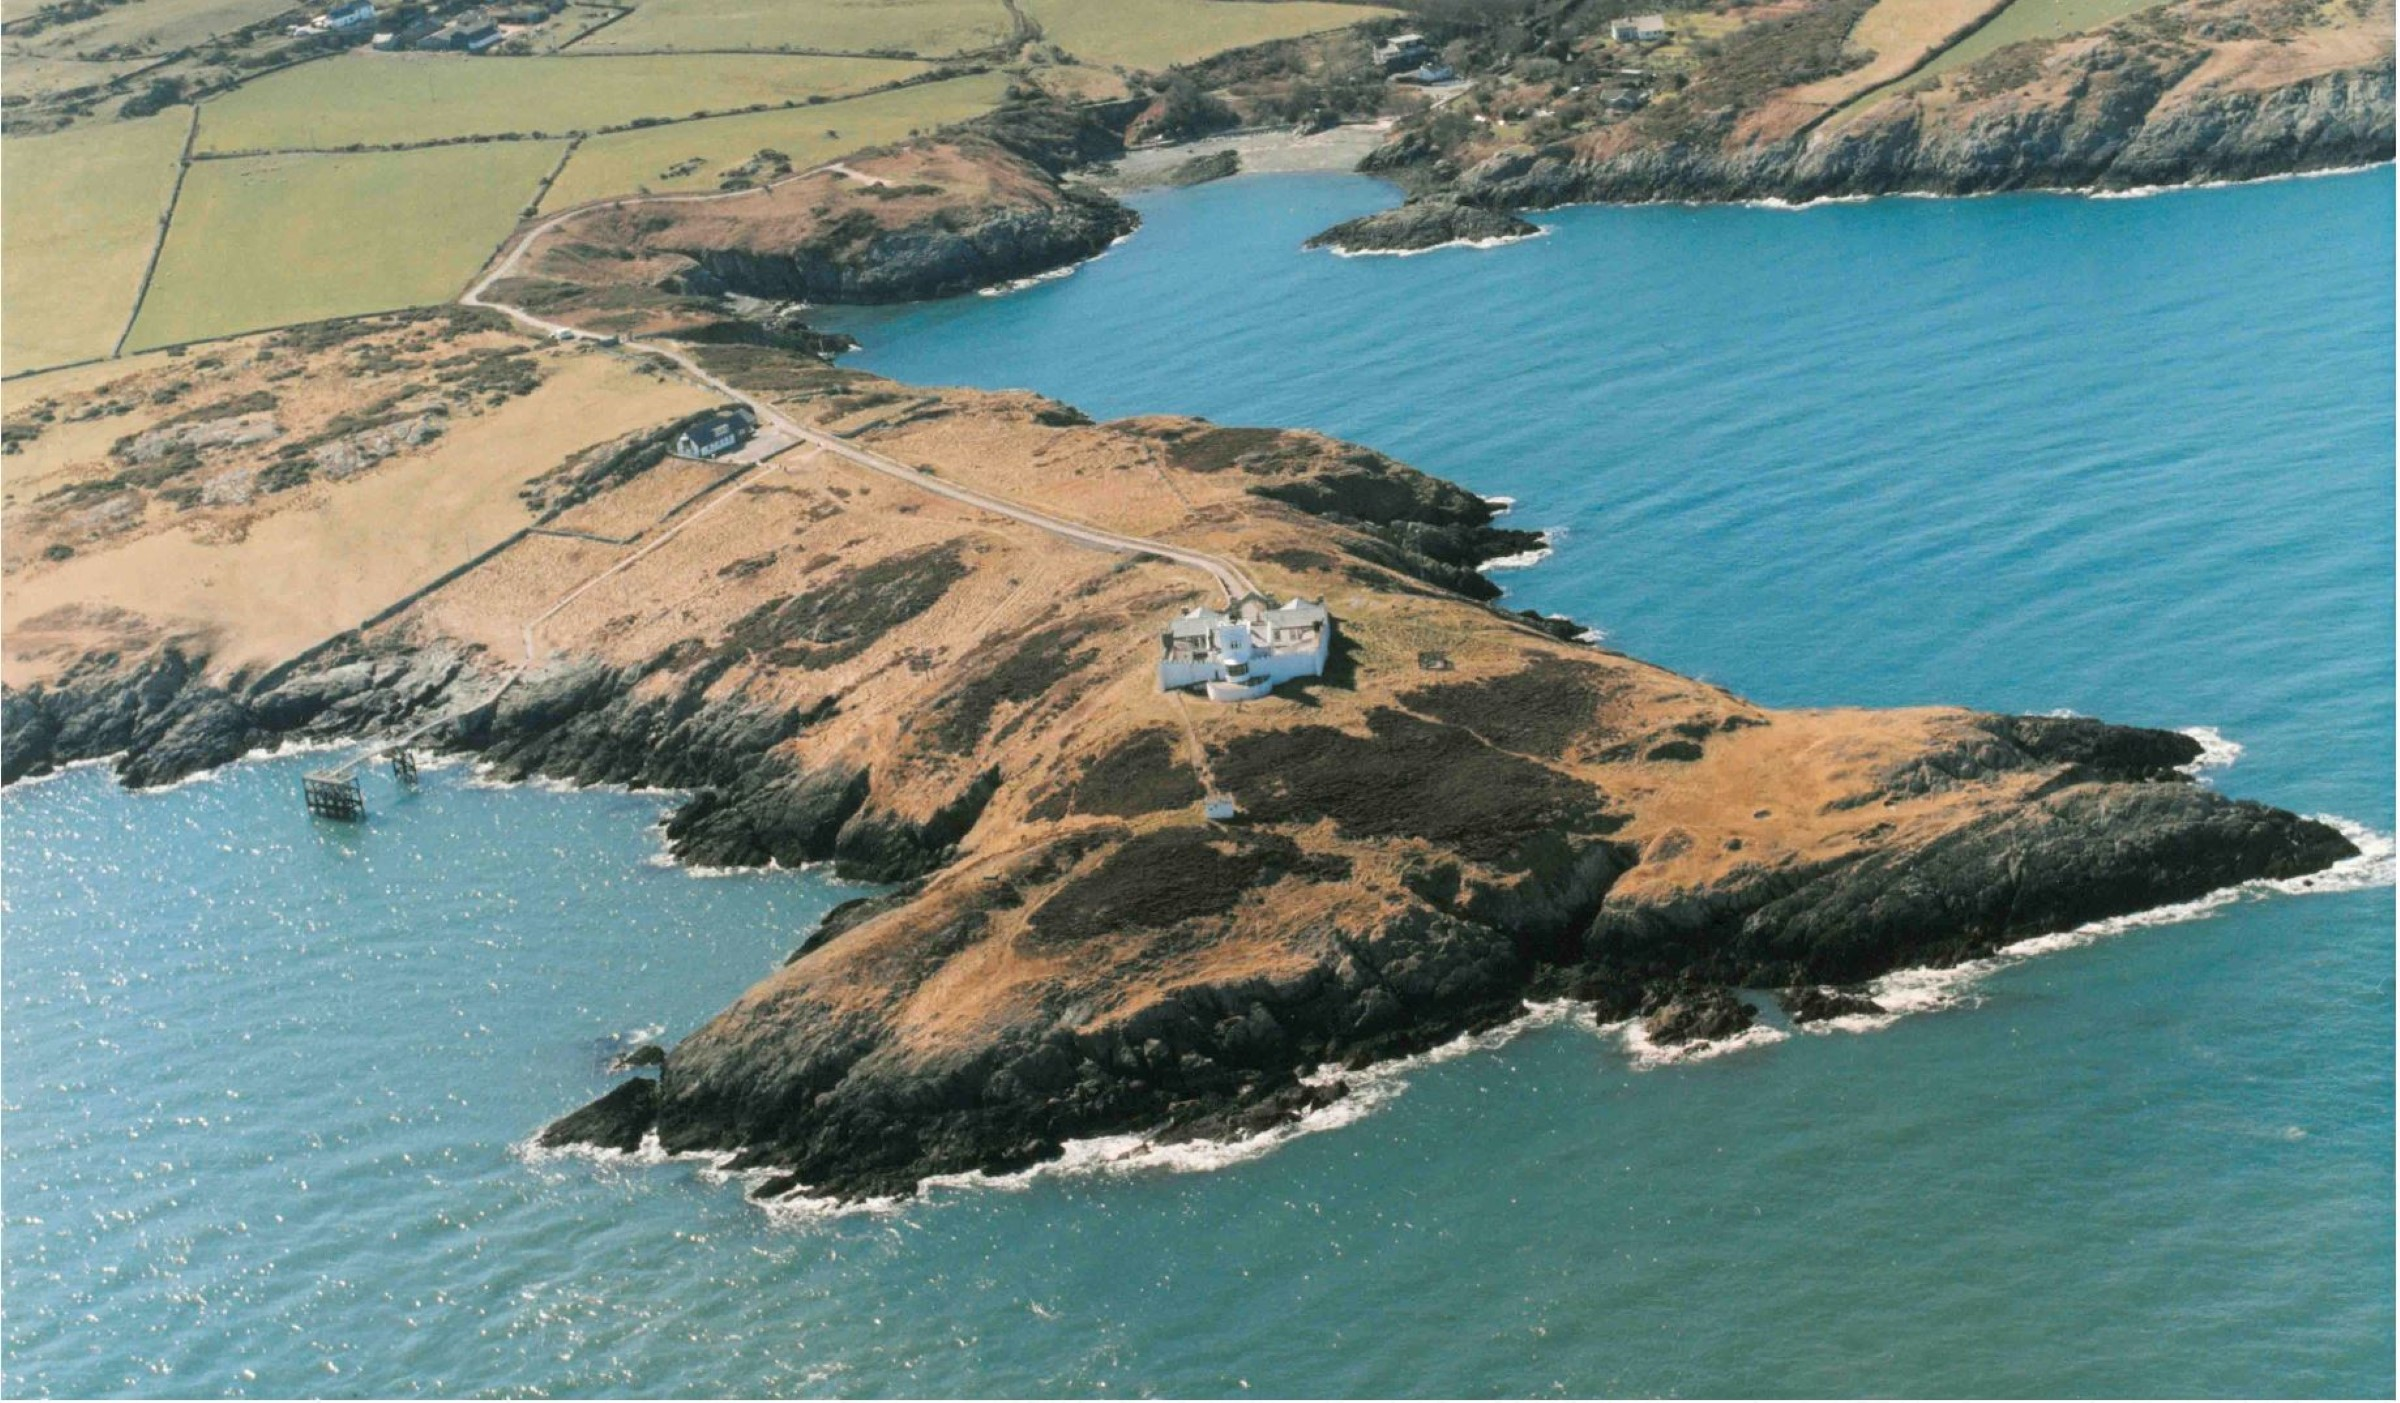 独户住宅 为 销售 在 Lighthouse North Wales Point Lynas Amlwch, 威尔士, LL689LT 英国